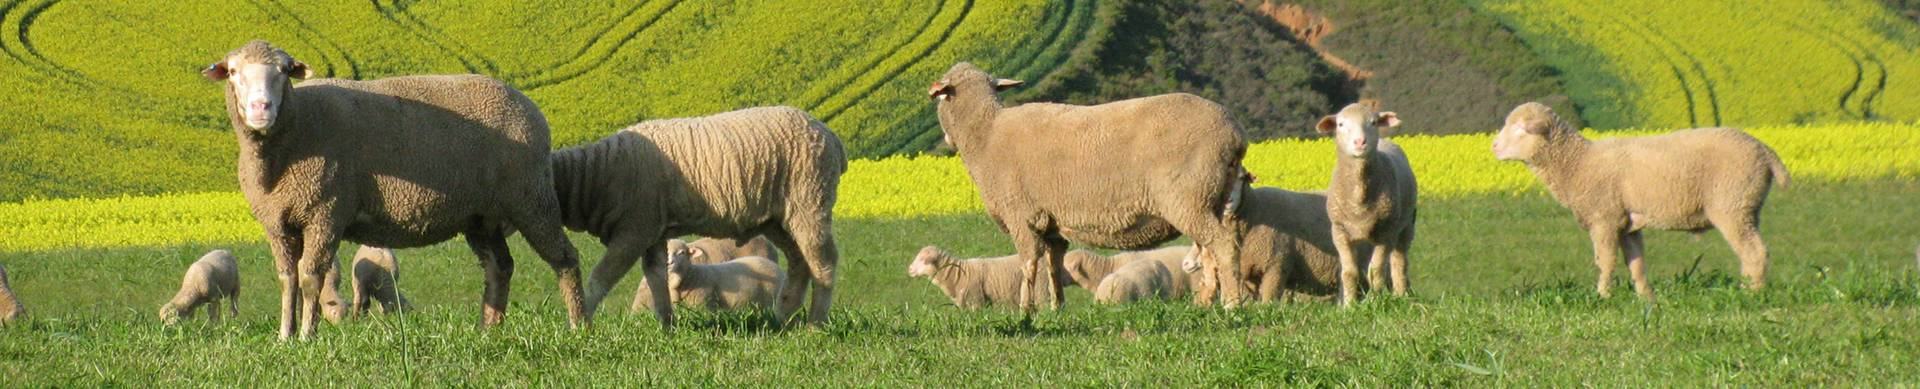 About-the-nwga-wool-growers